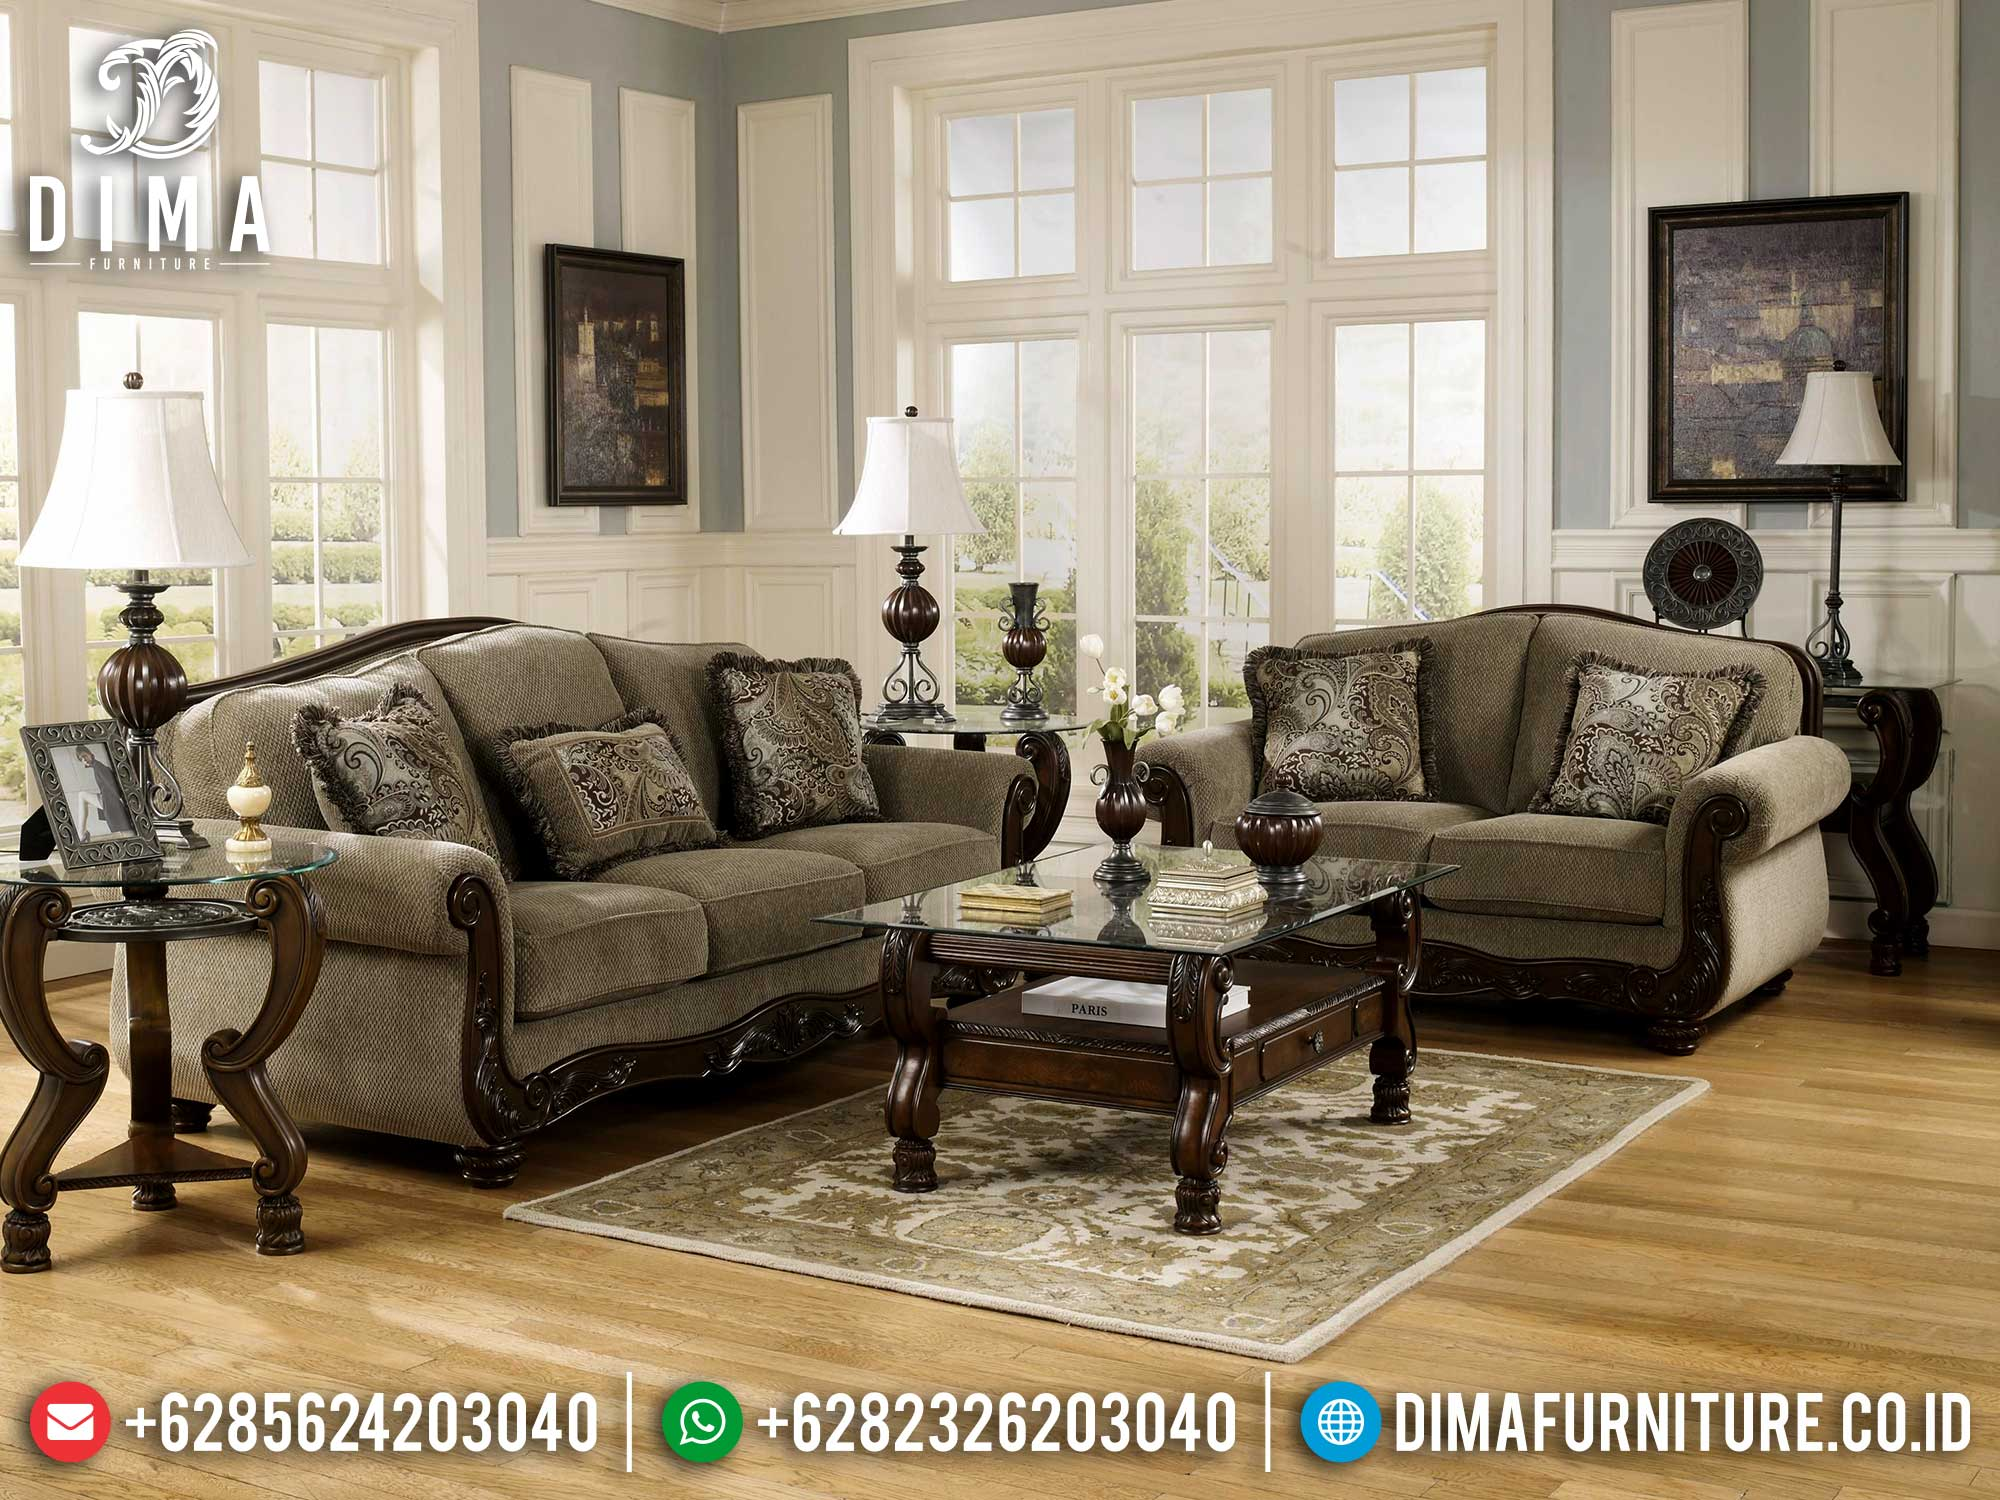 Sofa Tamu Minimalis Jati Terbaru Luxury Classic Furniture Jepara Best Sale Mm-0933